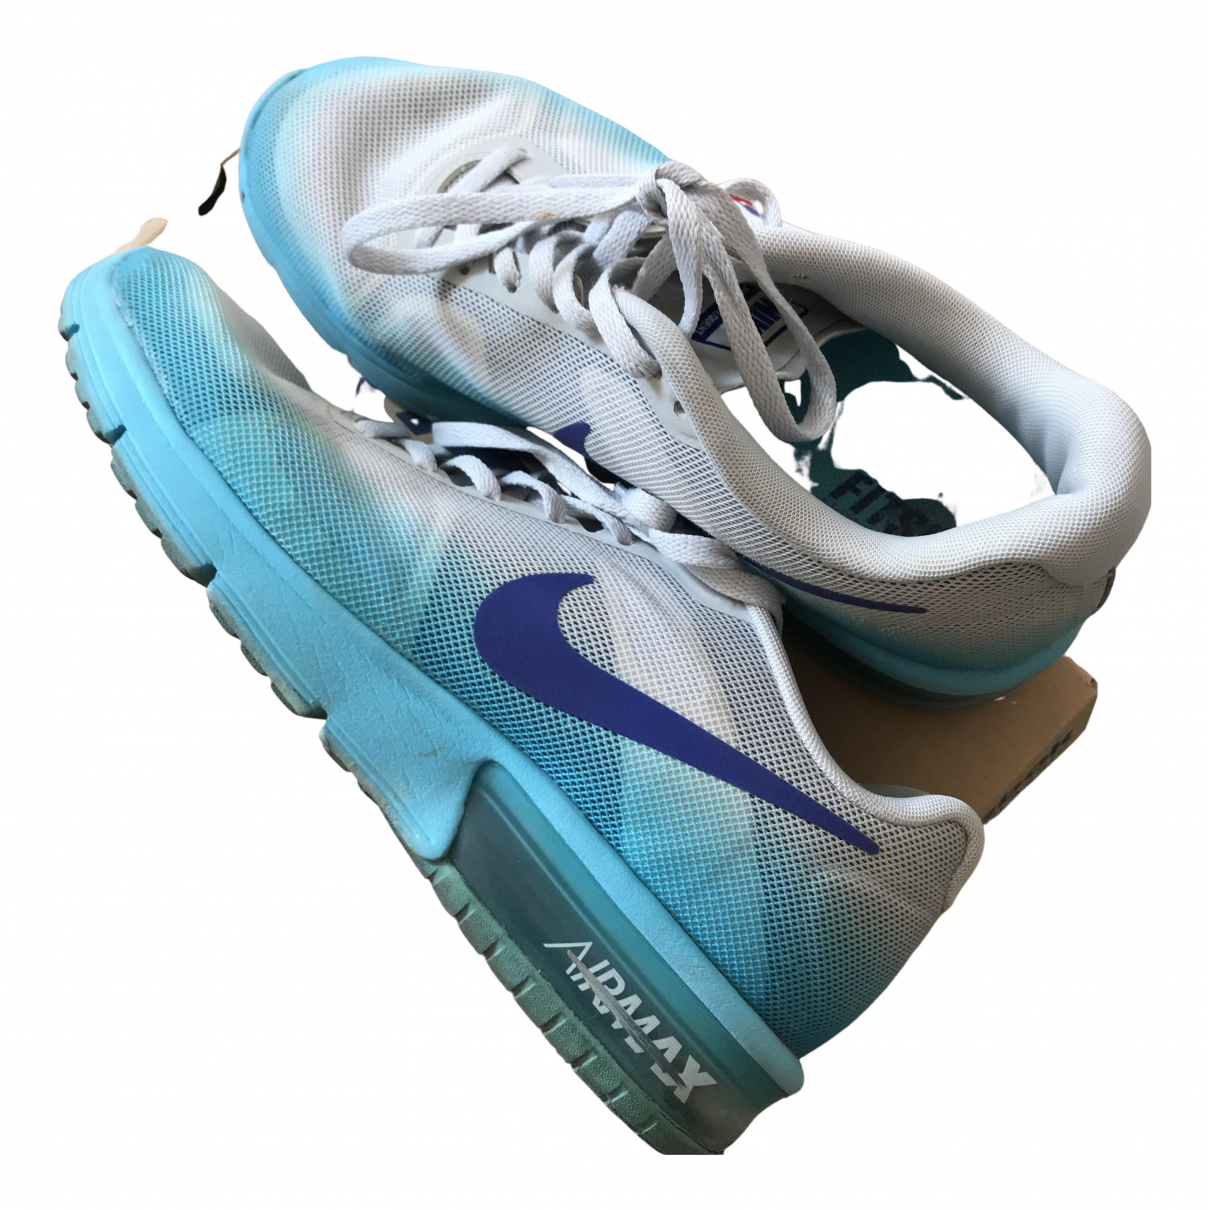 Nike Air Max  Blue Trainers for Women 38 EU